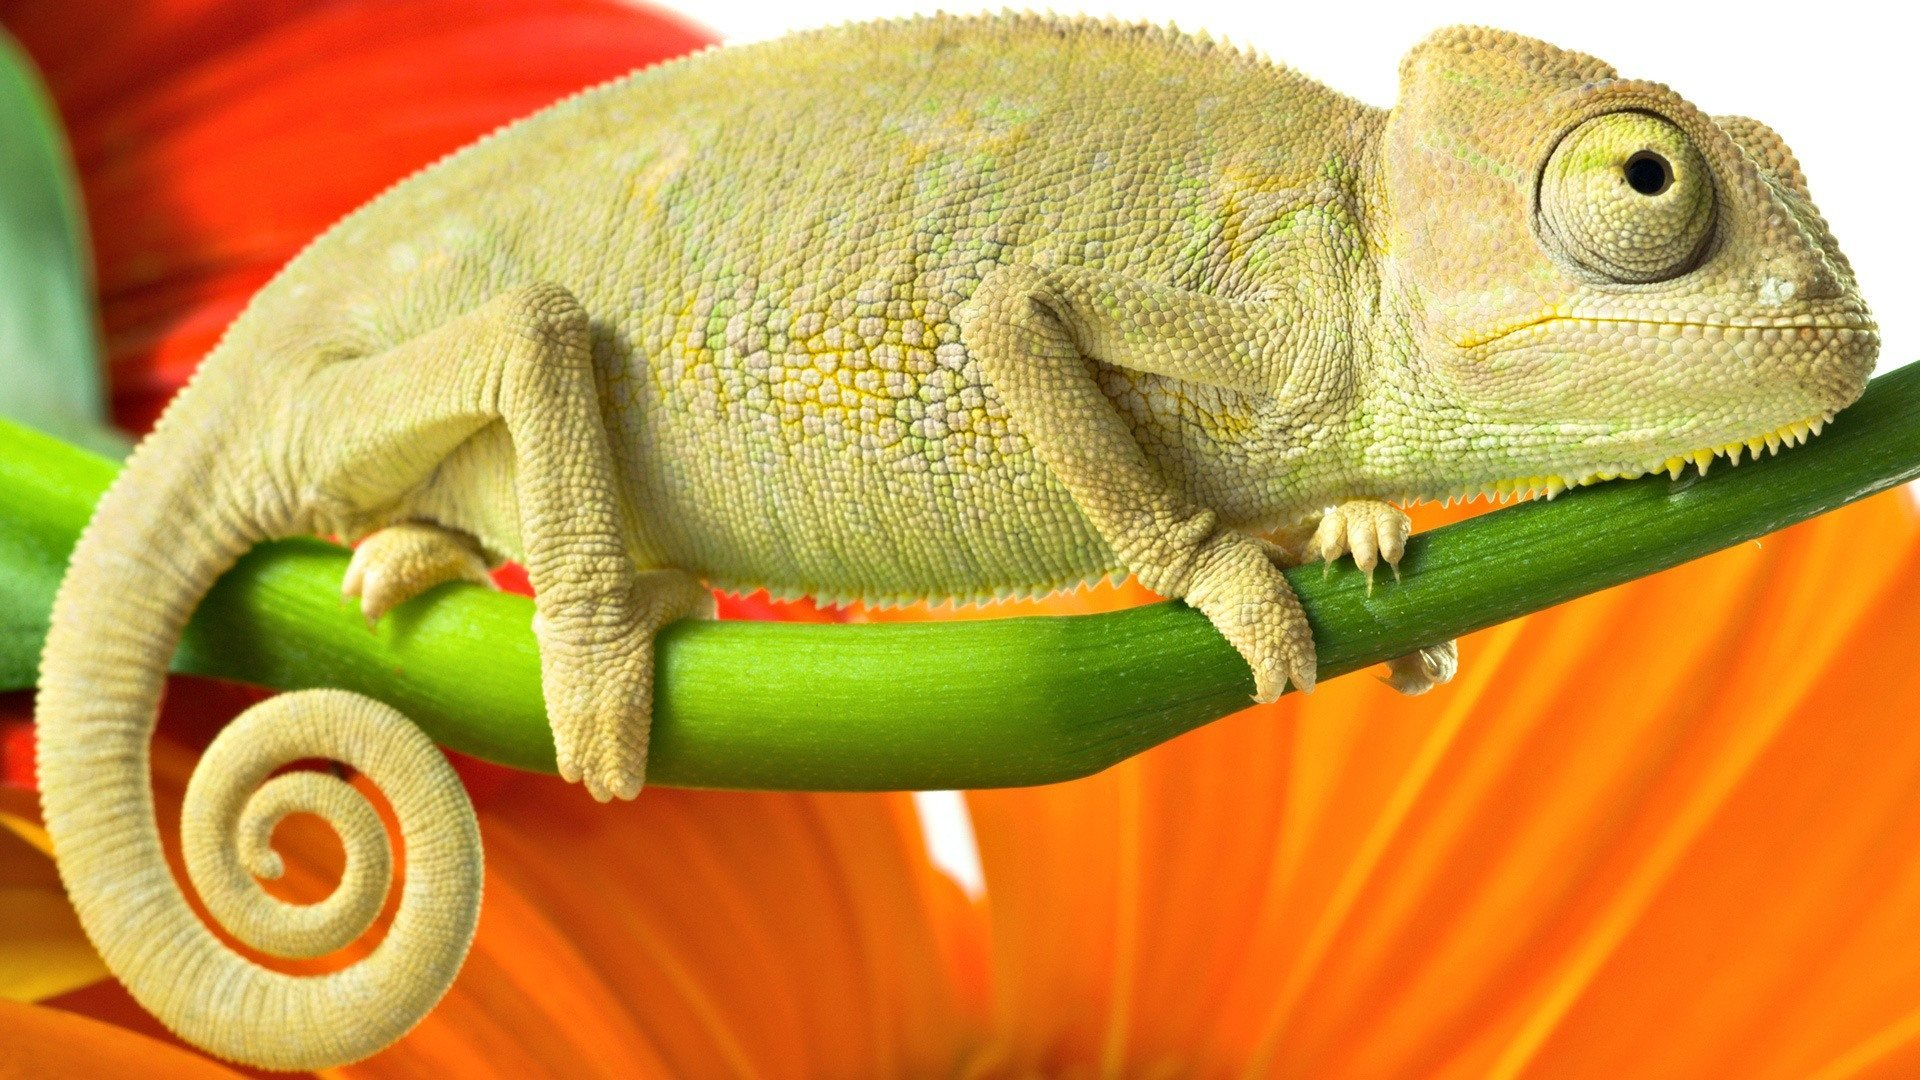 Best Chameleon wallpaper ID:462599 for High Resolution full hd 1080p computer